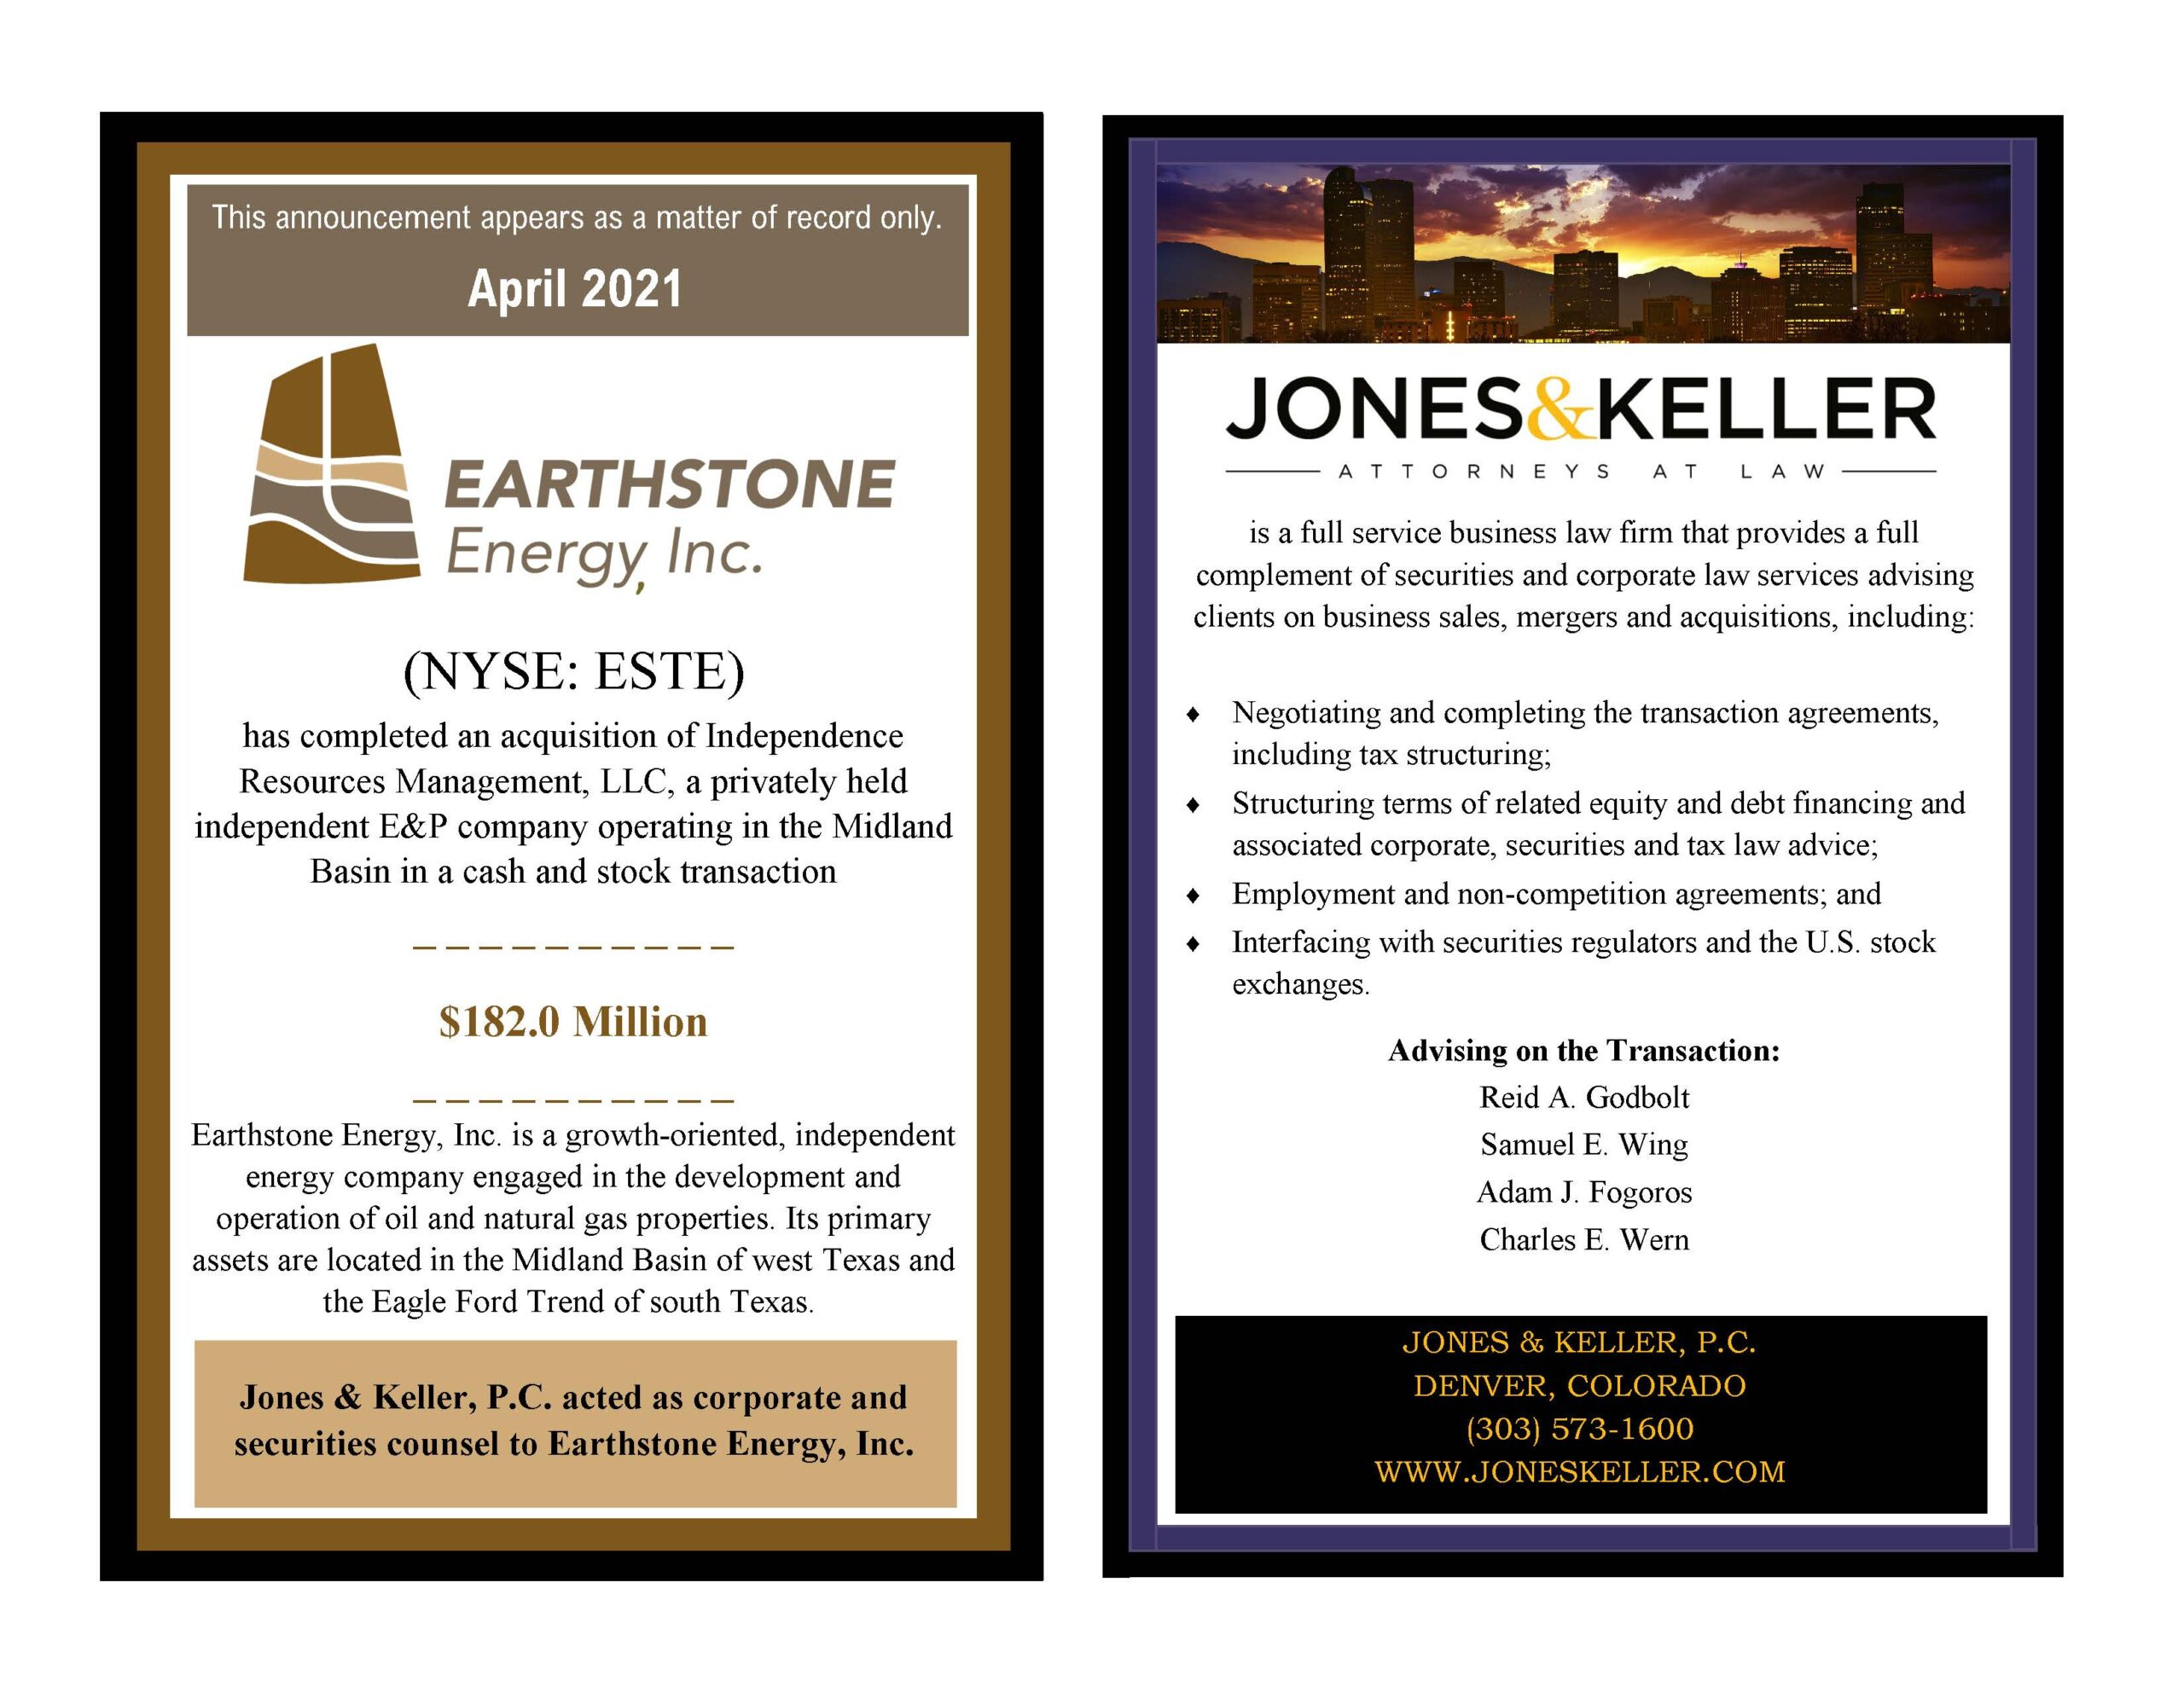 Earthstone Energy, Inc., acquisition of Independence Resources Management, advised by Jones & Keller